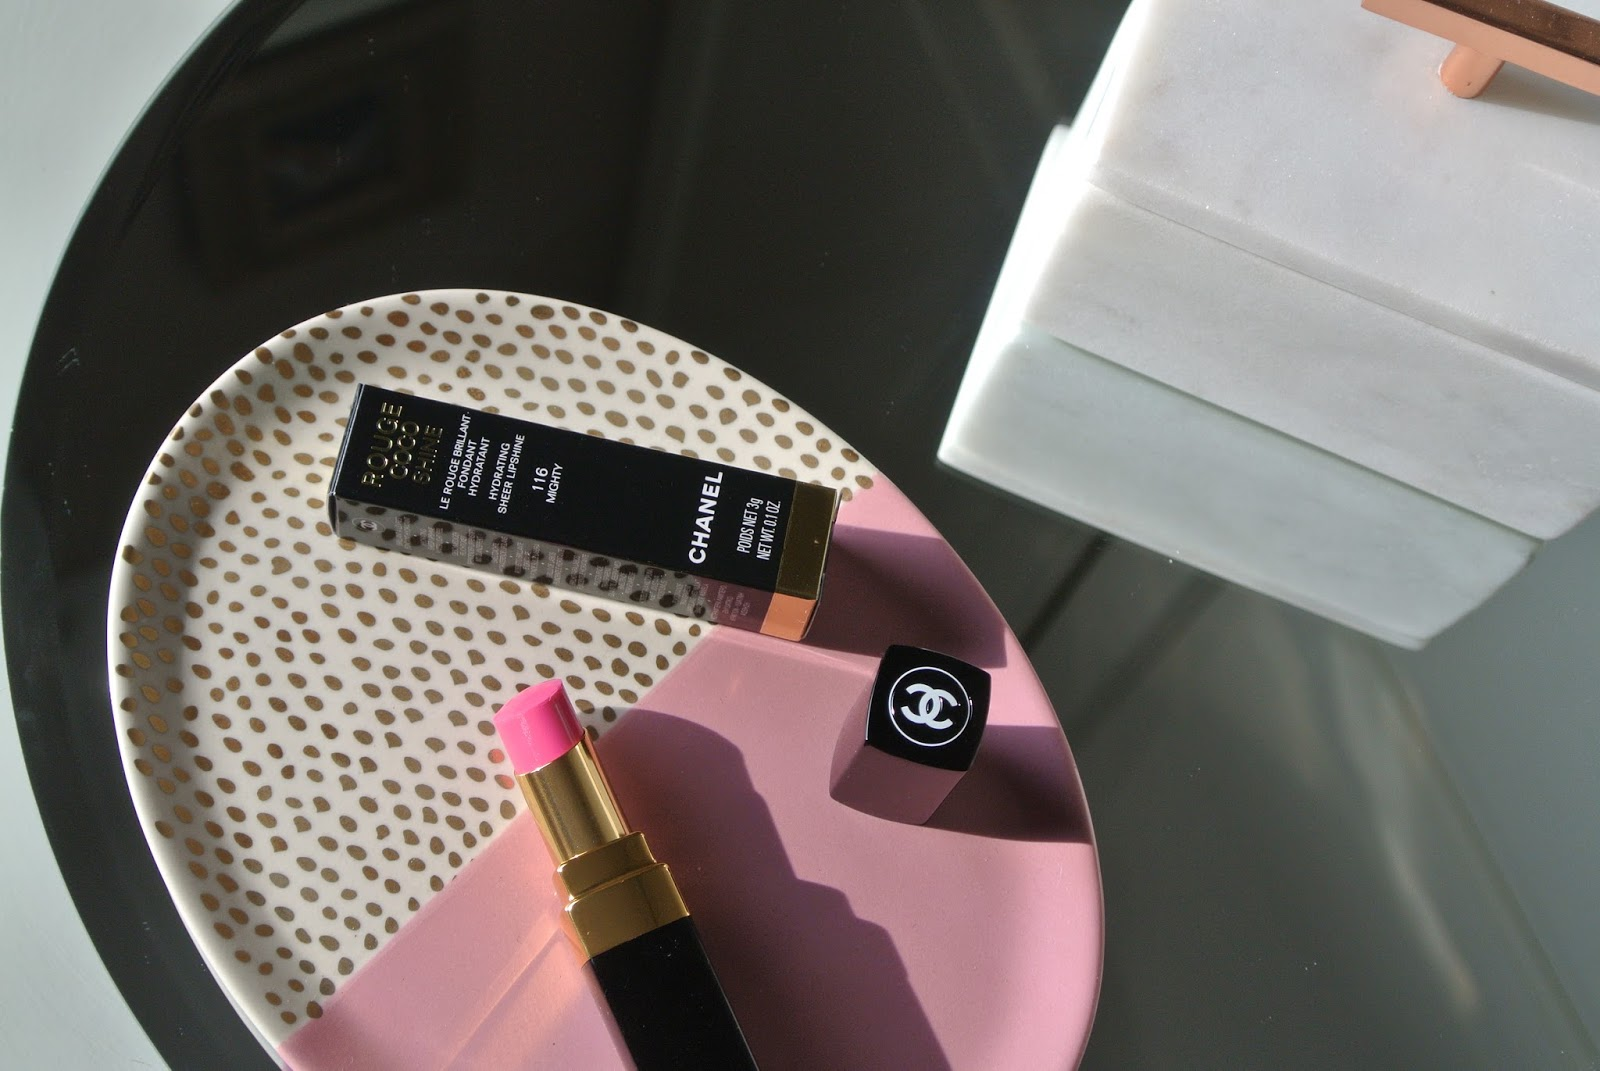 Chanel LIMITED EDITION Rouge Coco Shine Lipstick in 116 Mighty